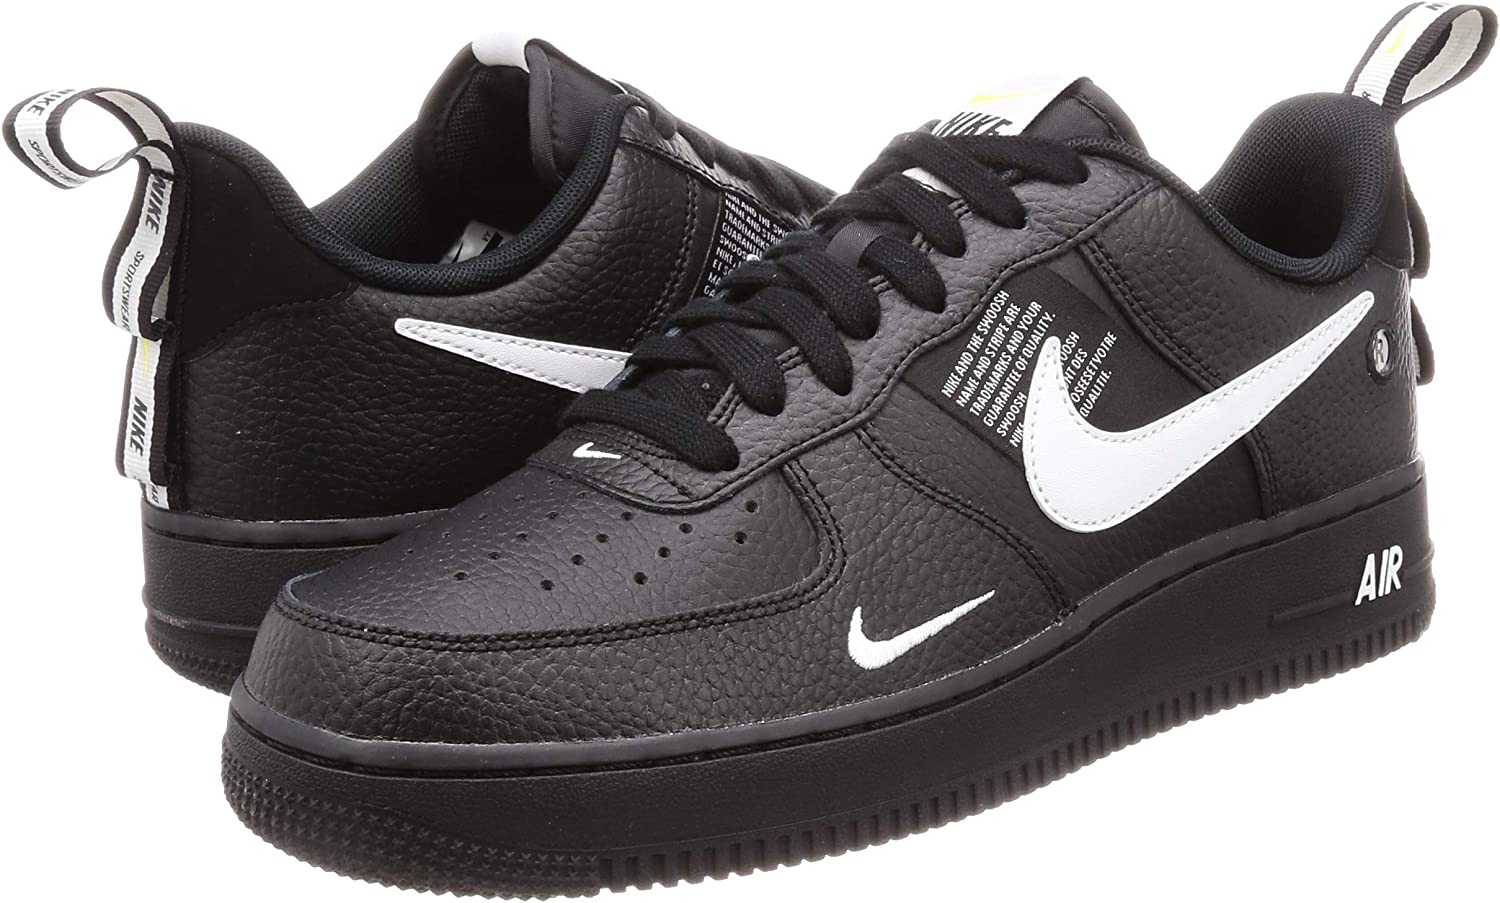 Nike Air Force 1 '07 LV8 Utility ab 599,99 € (März 2020